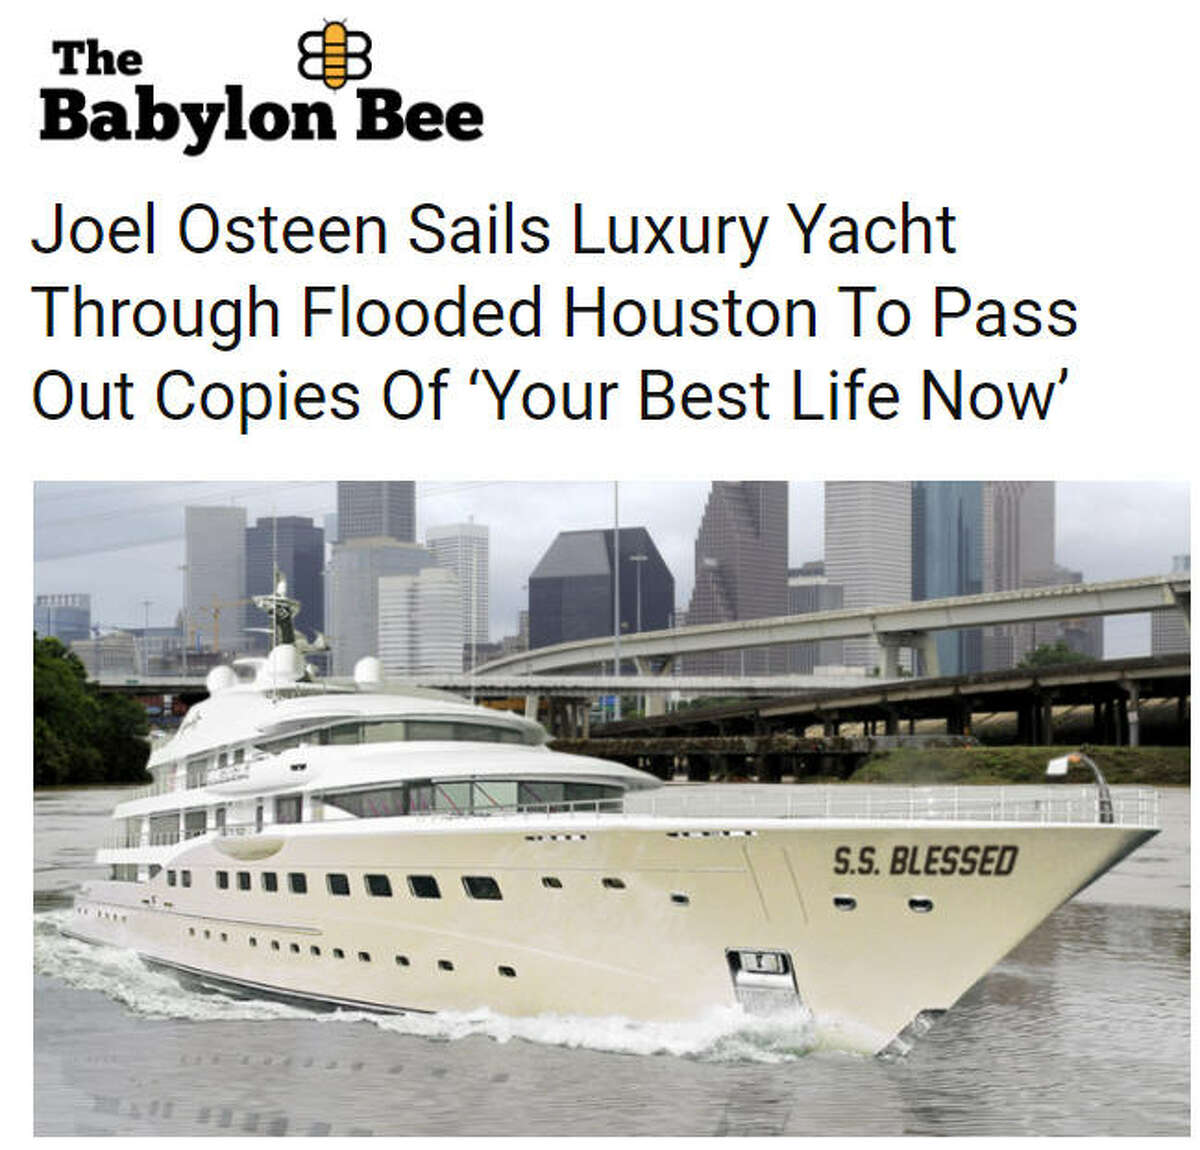 A satirical news story from the Christian satire site The Babylon Bee